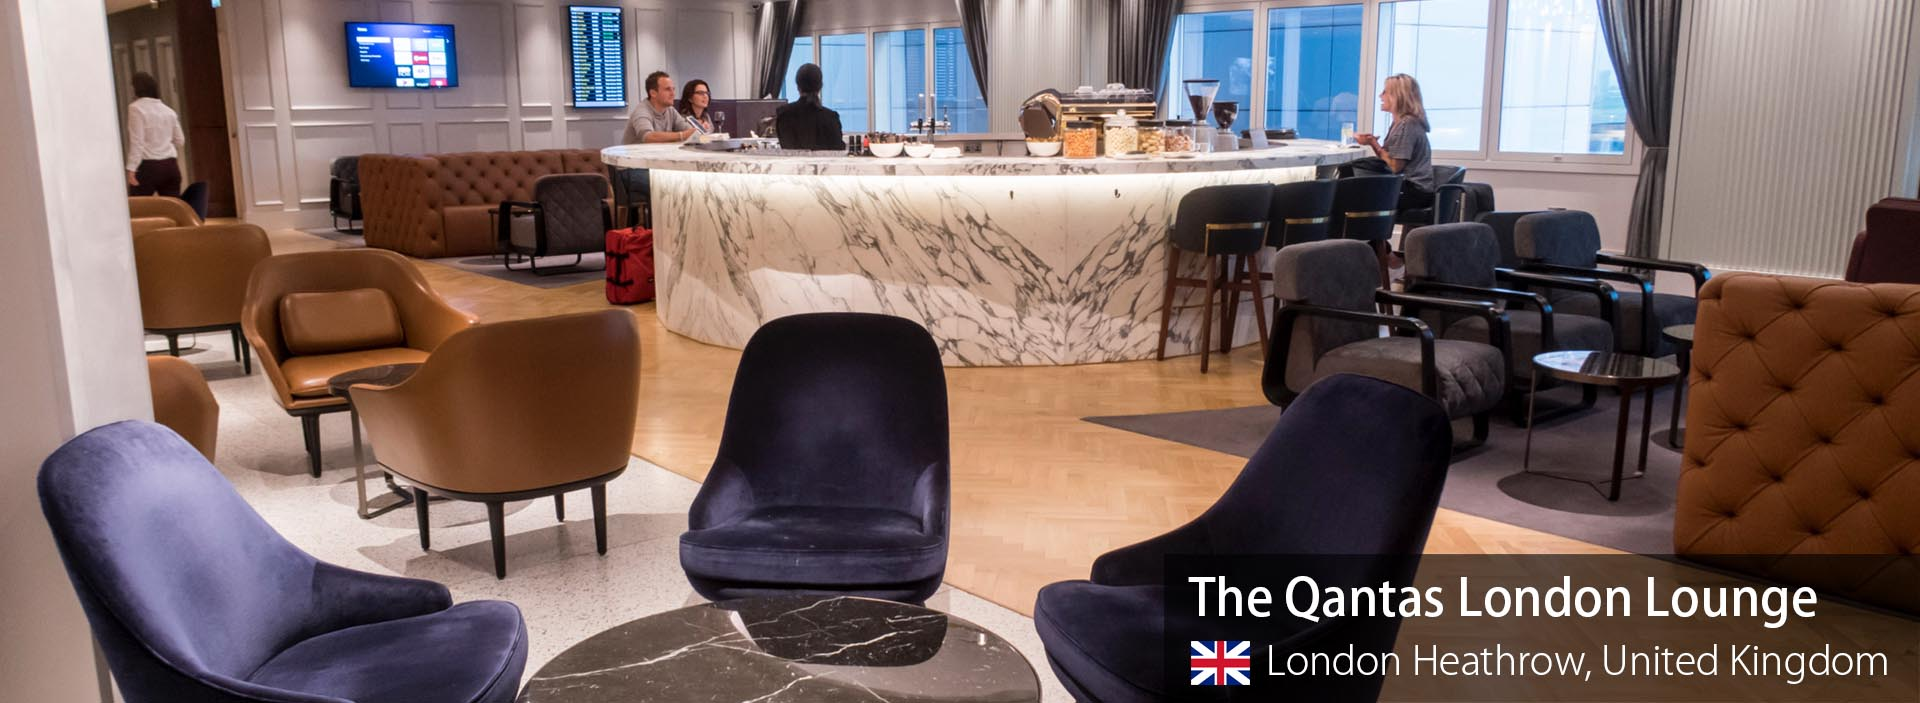 Lounge Review: The Qantas London Lounge at London Heathrow